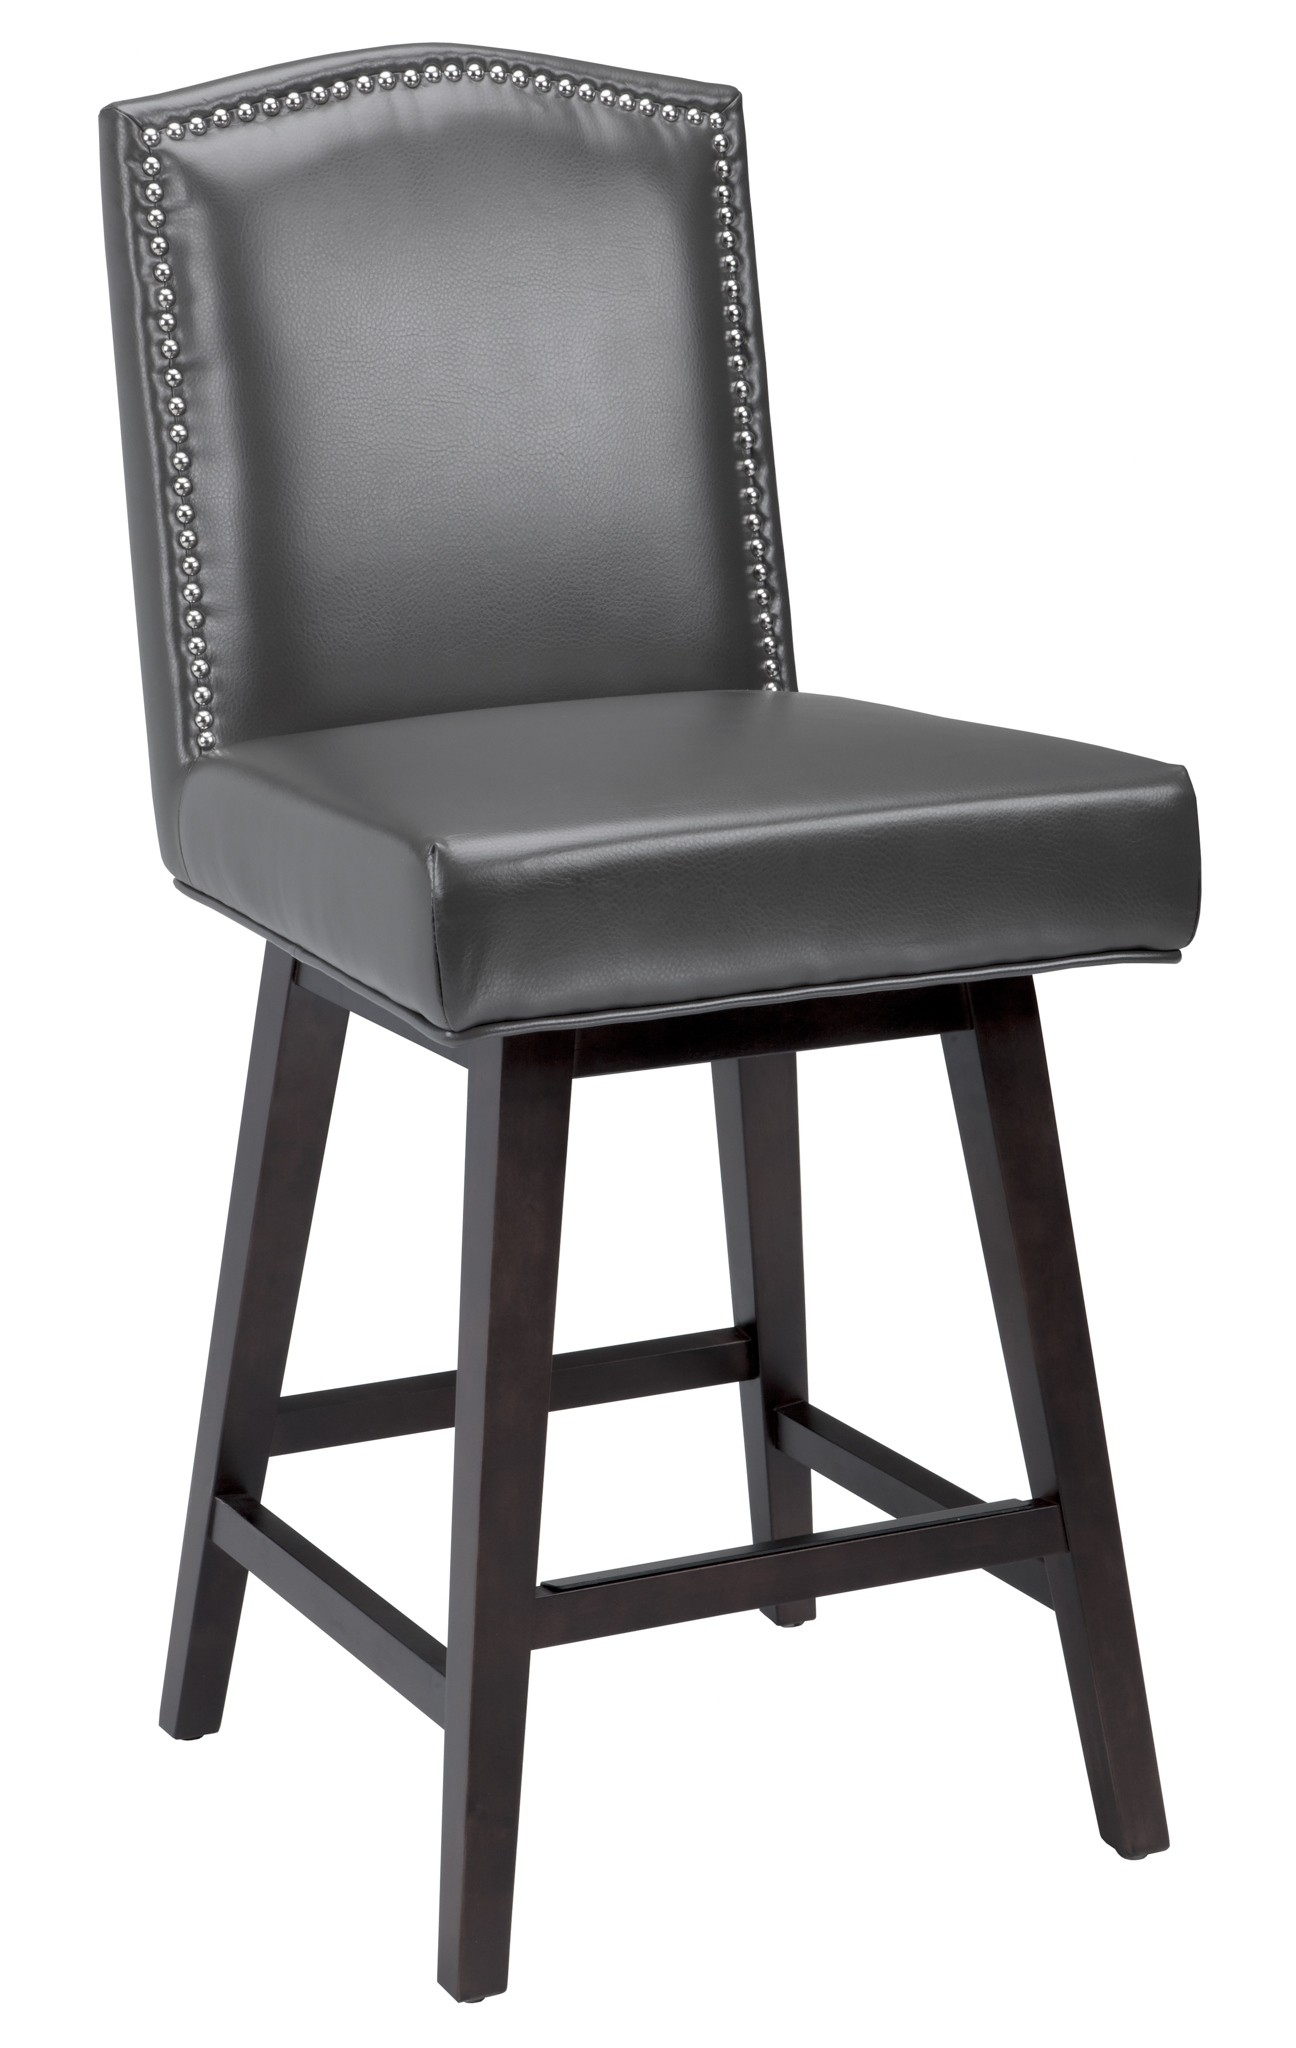 Maison Grey Swivel Counter Stool From Sunpan 73018